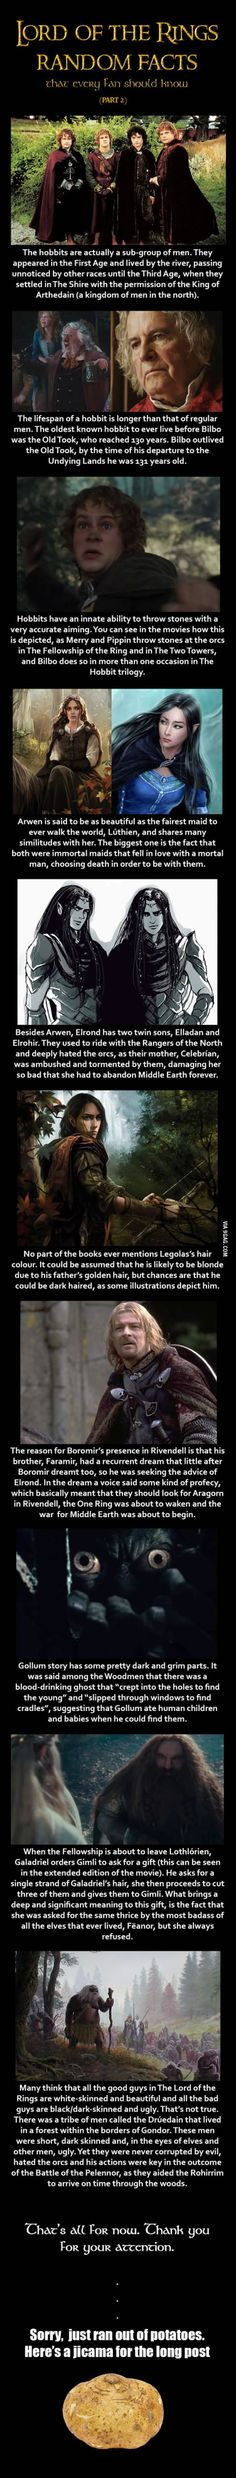 Here are some Lord of the Rings random facts (Part 2)